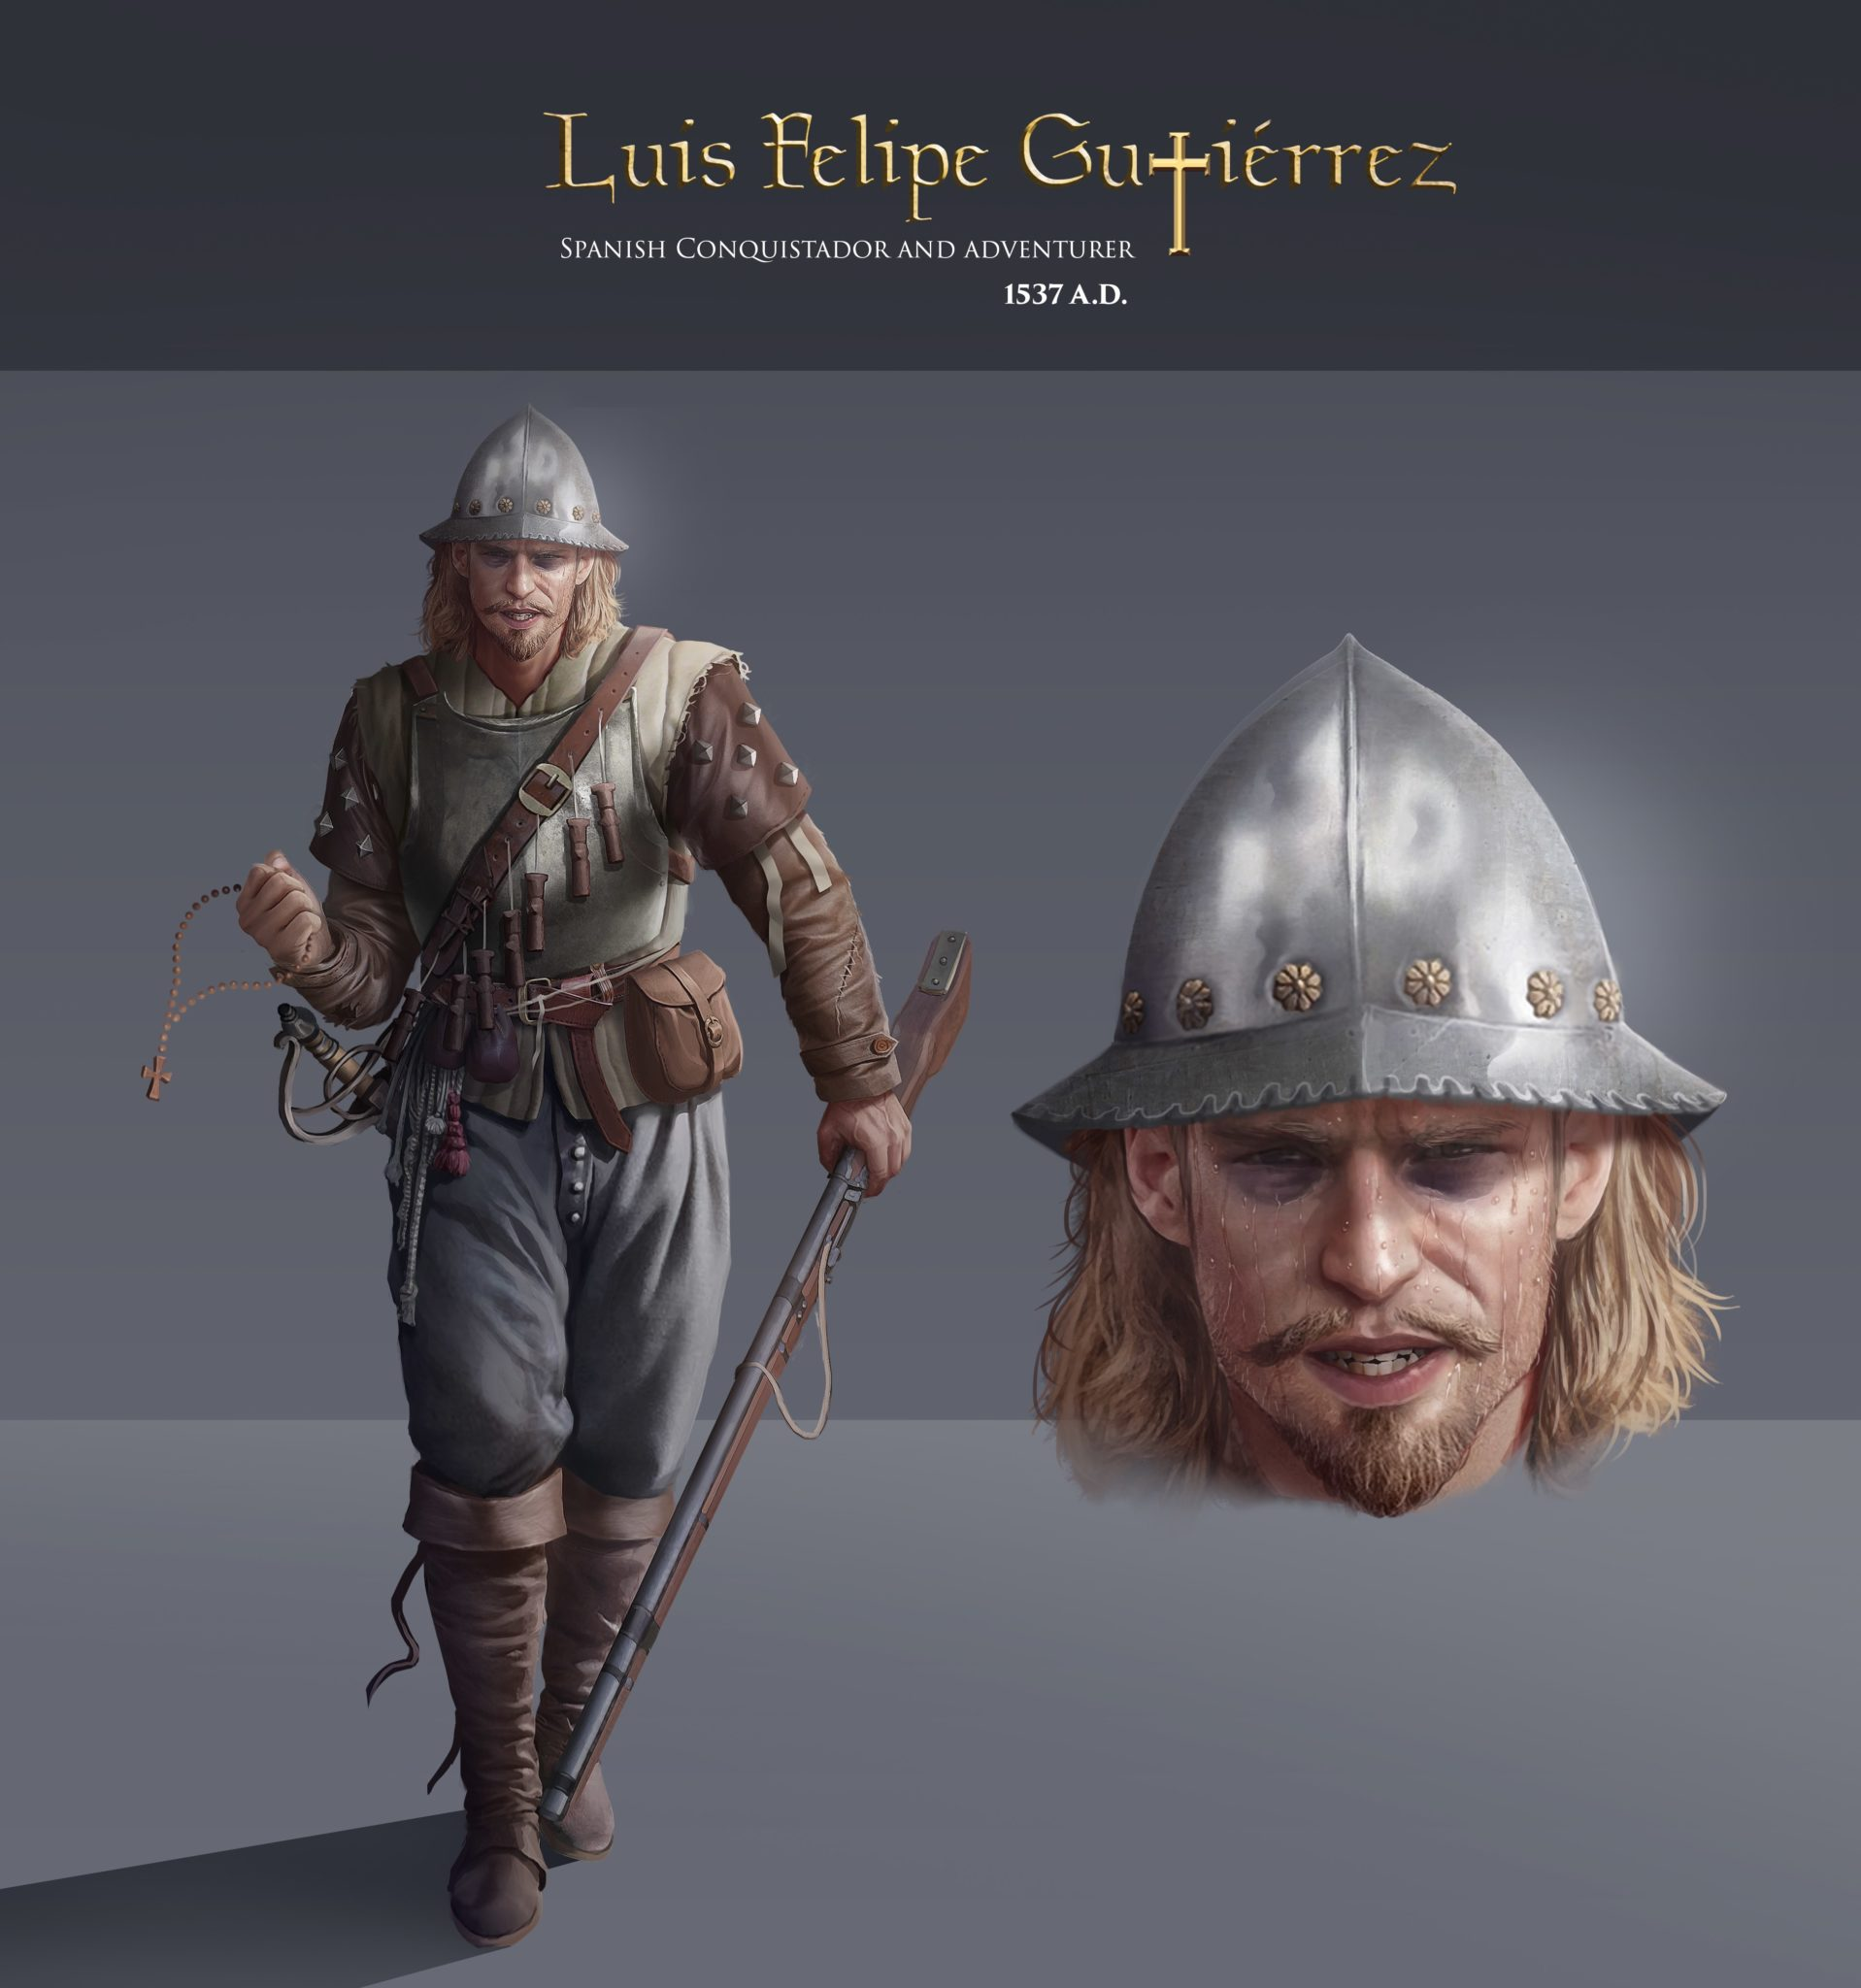 History Adventures Character: Luis Felipe Gutierrez, Spanish Conquistador, the New World (Modern Day, Peru), 1537 CE